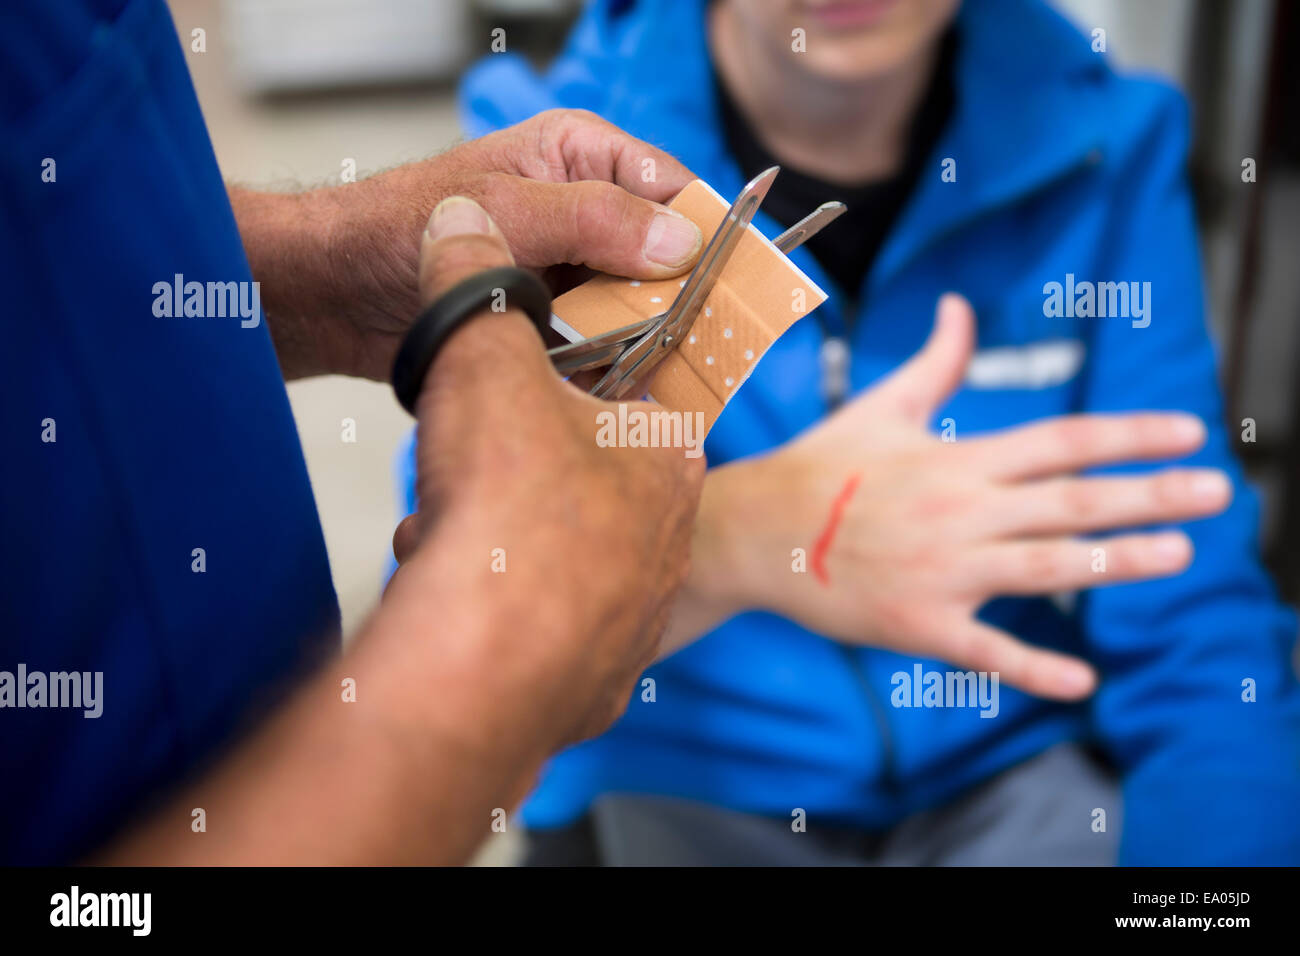 Factory worker applying first aid to colleague - Stock Image